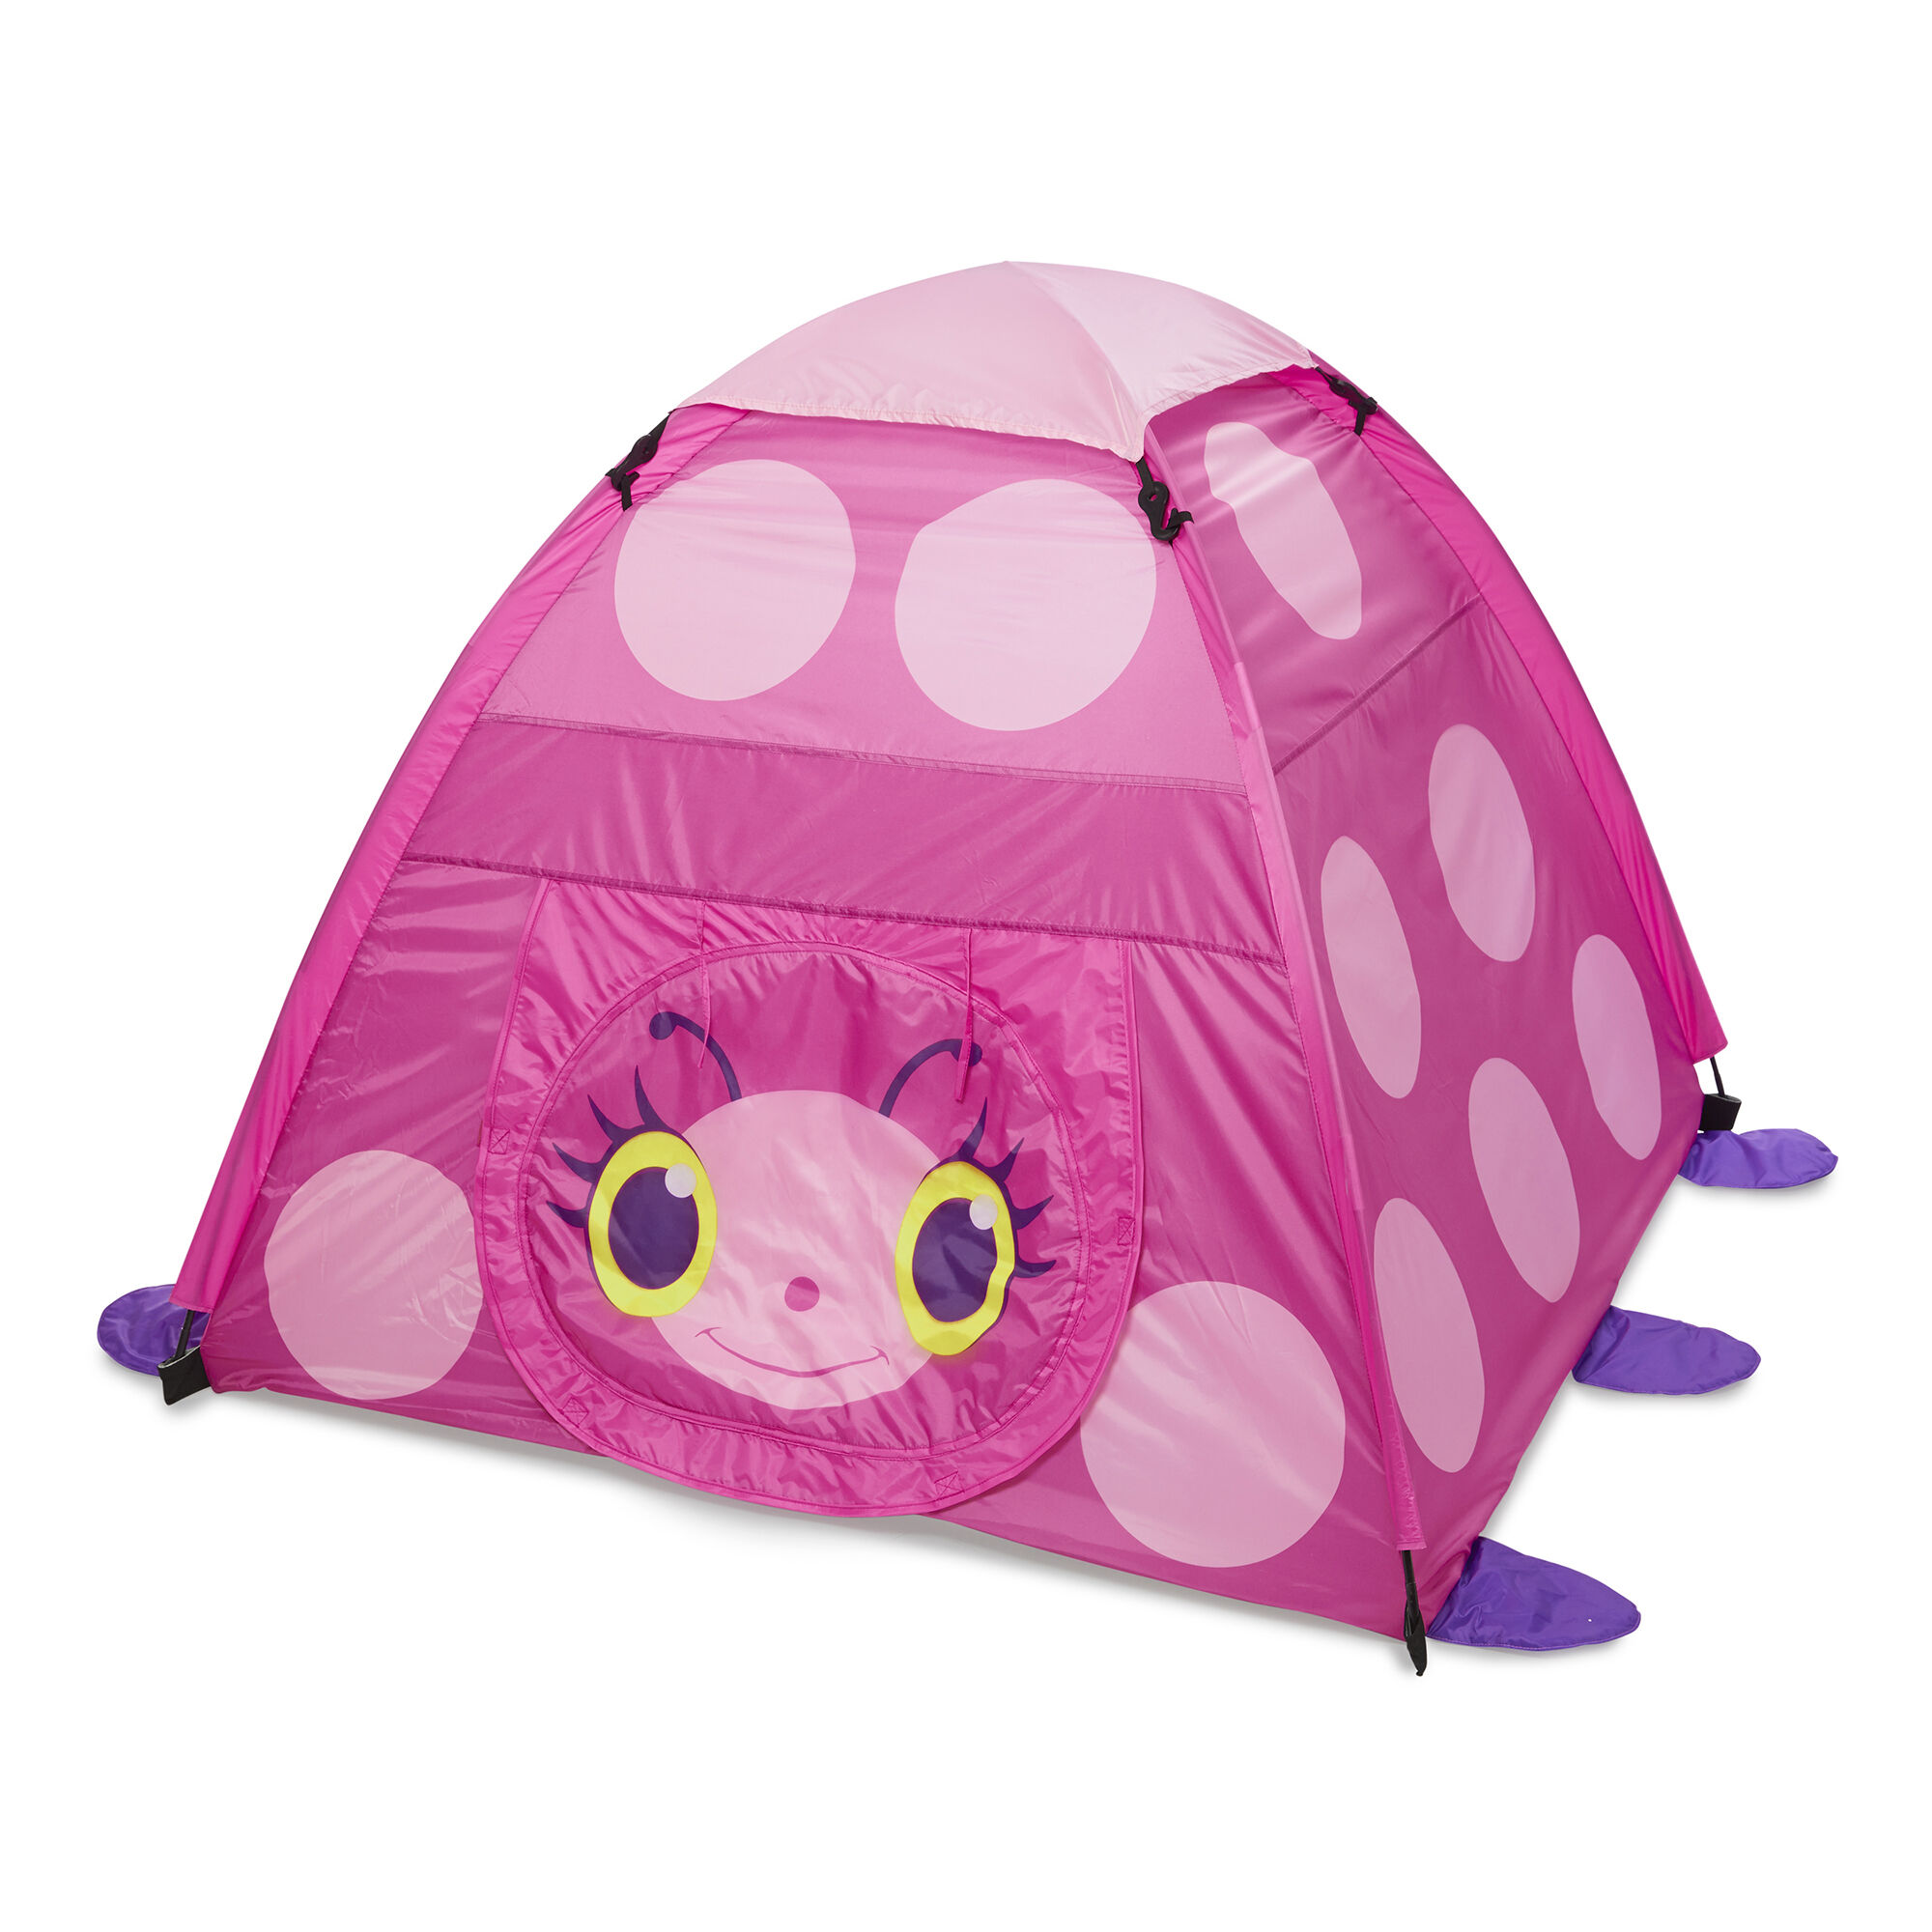 Trixie Tent  sc 1 st  Melissa u0026 Doug & Childrenu0027s Tents and Sleeping Bags for Kids | Melissa u0026 Doug